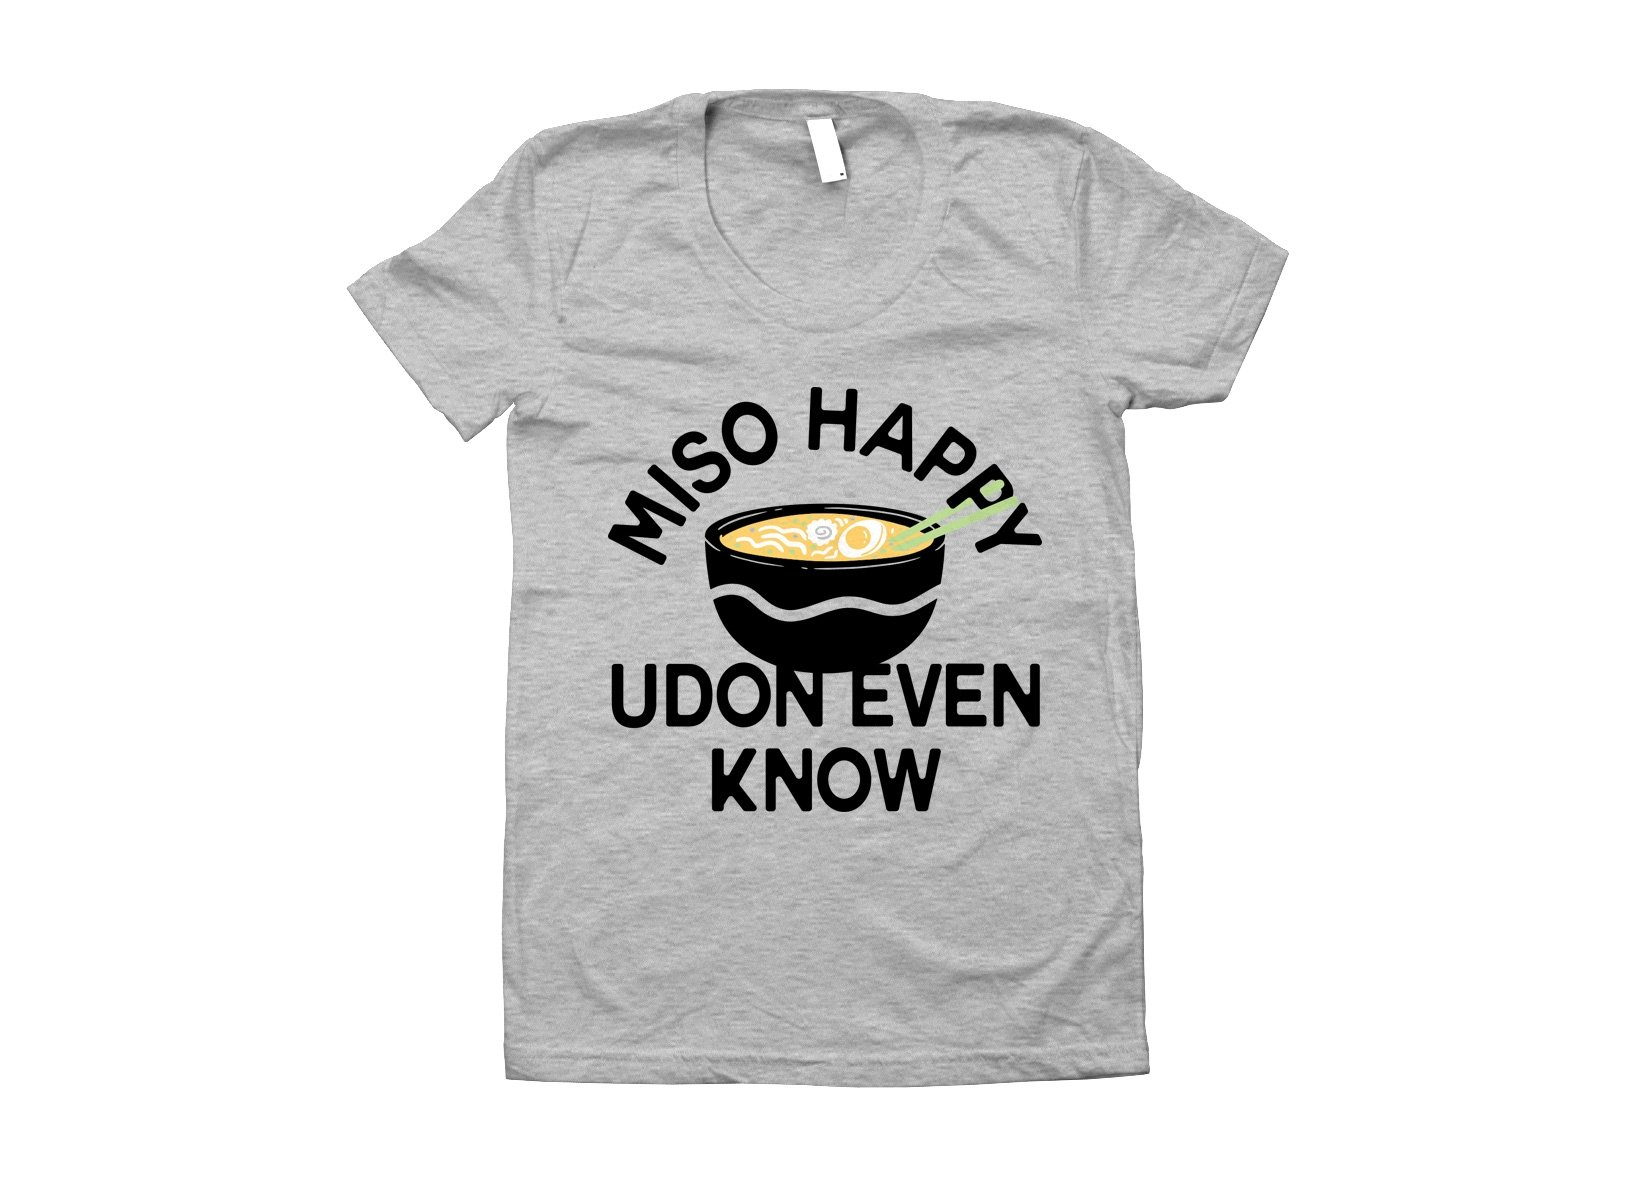 Miso Happy on Juniors T-Shirt